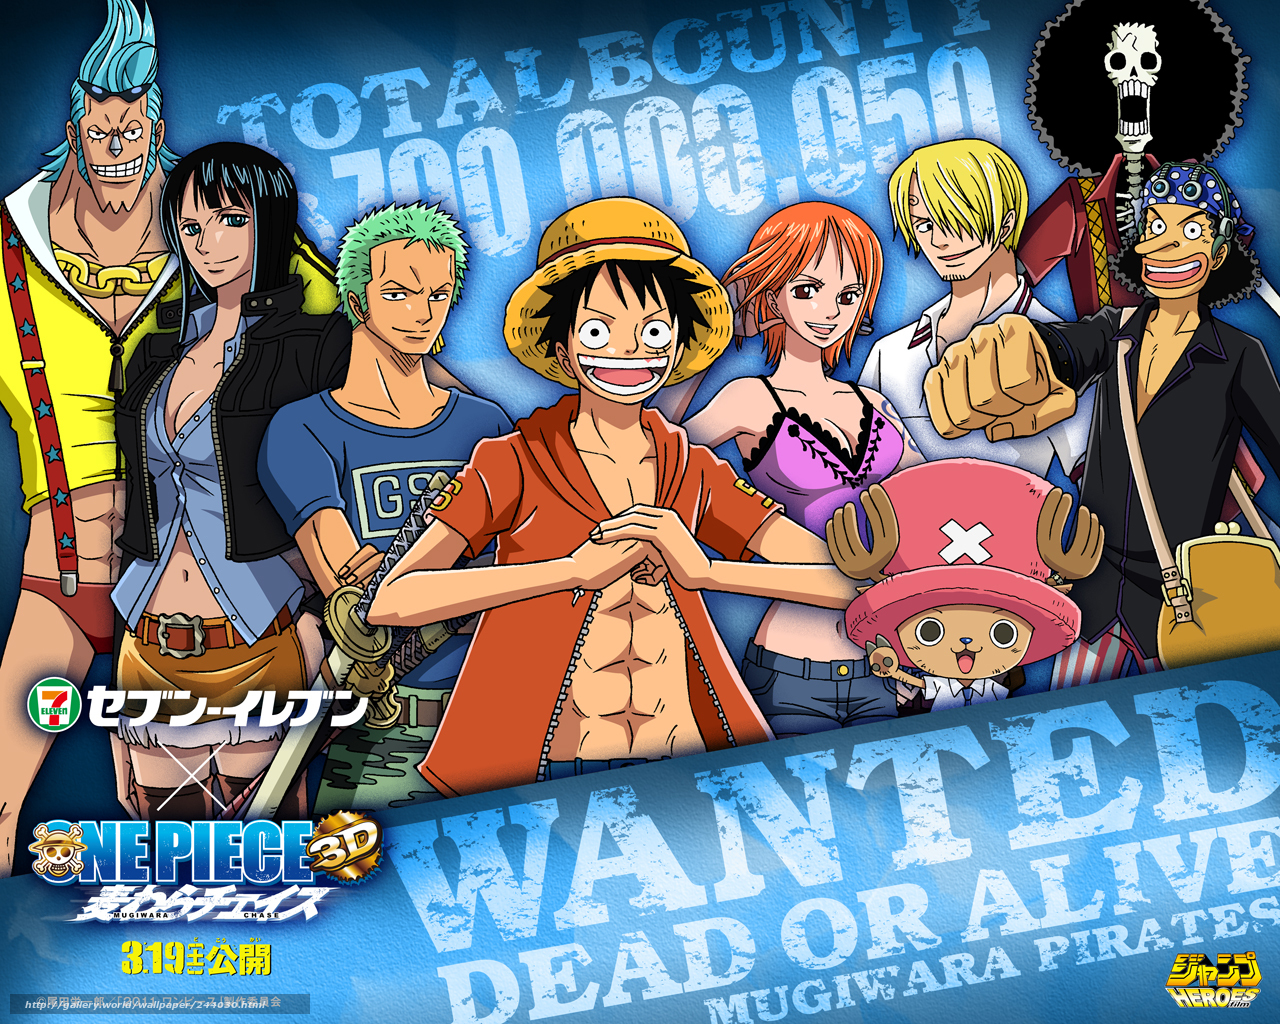 Download One Piece 3d Mugiwara Cheisu Avi Rhonalailhis Blog